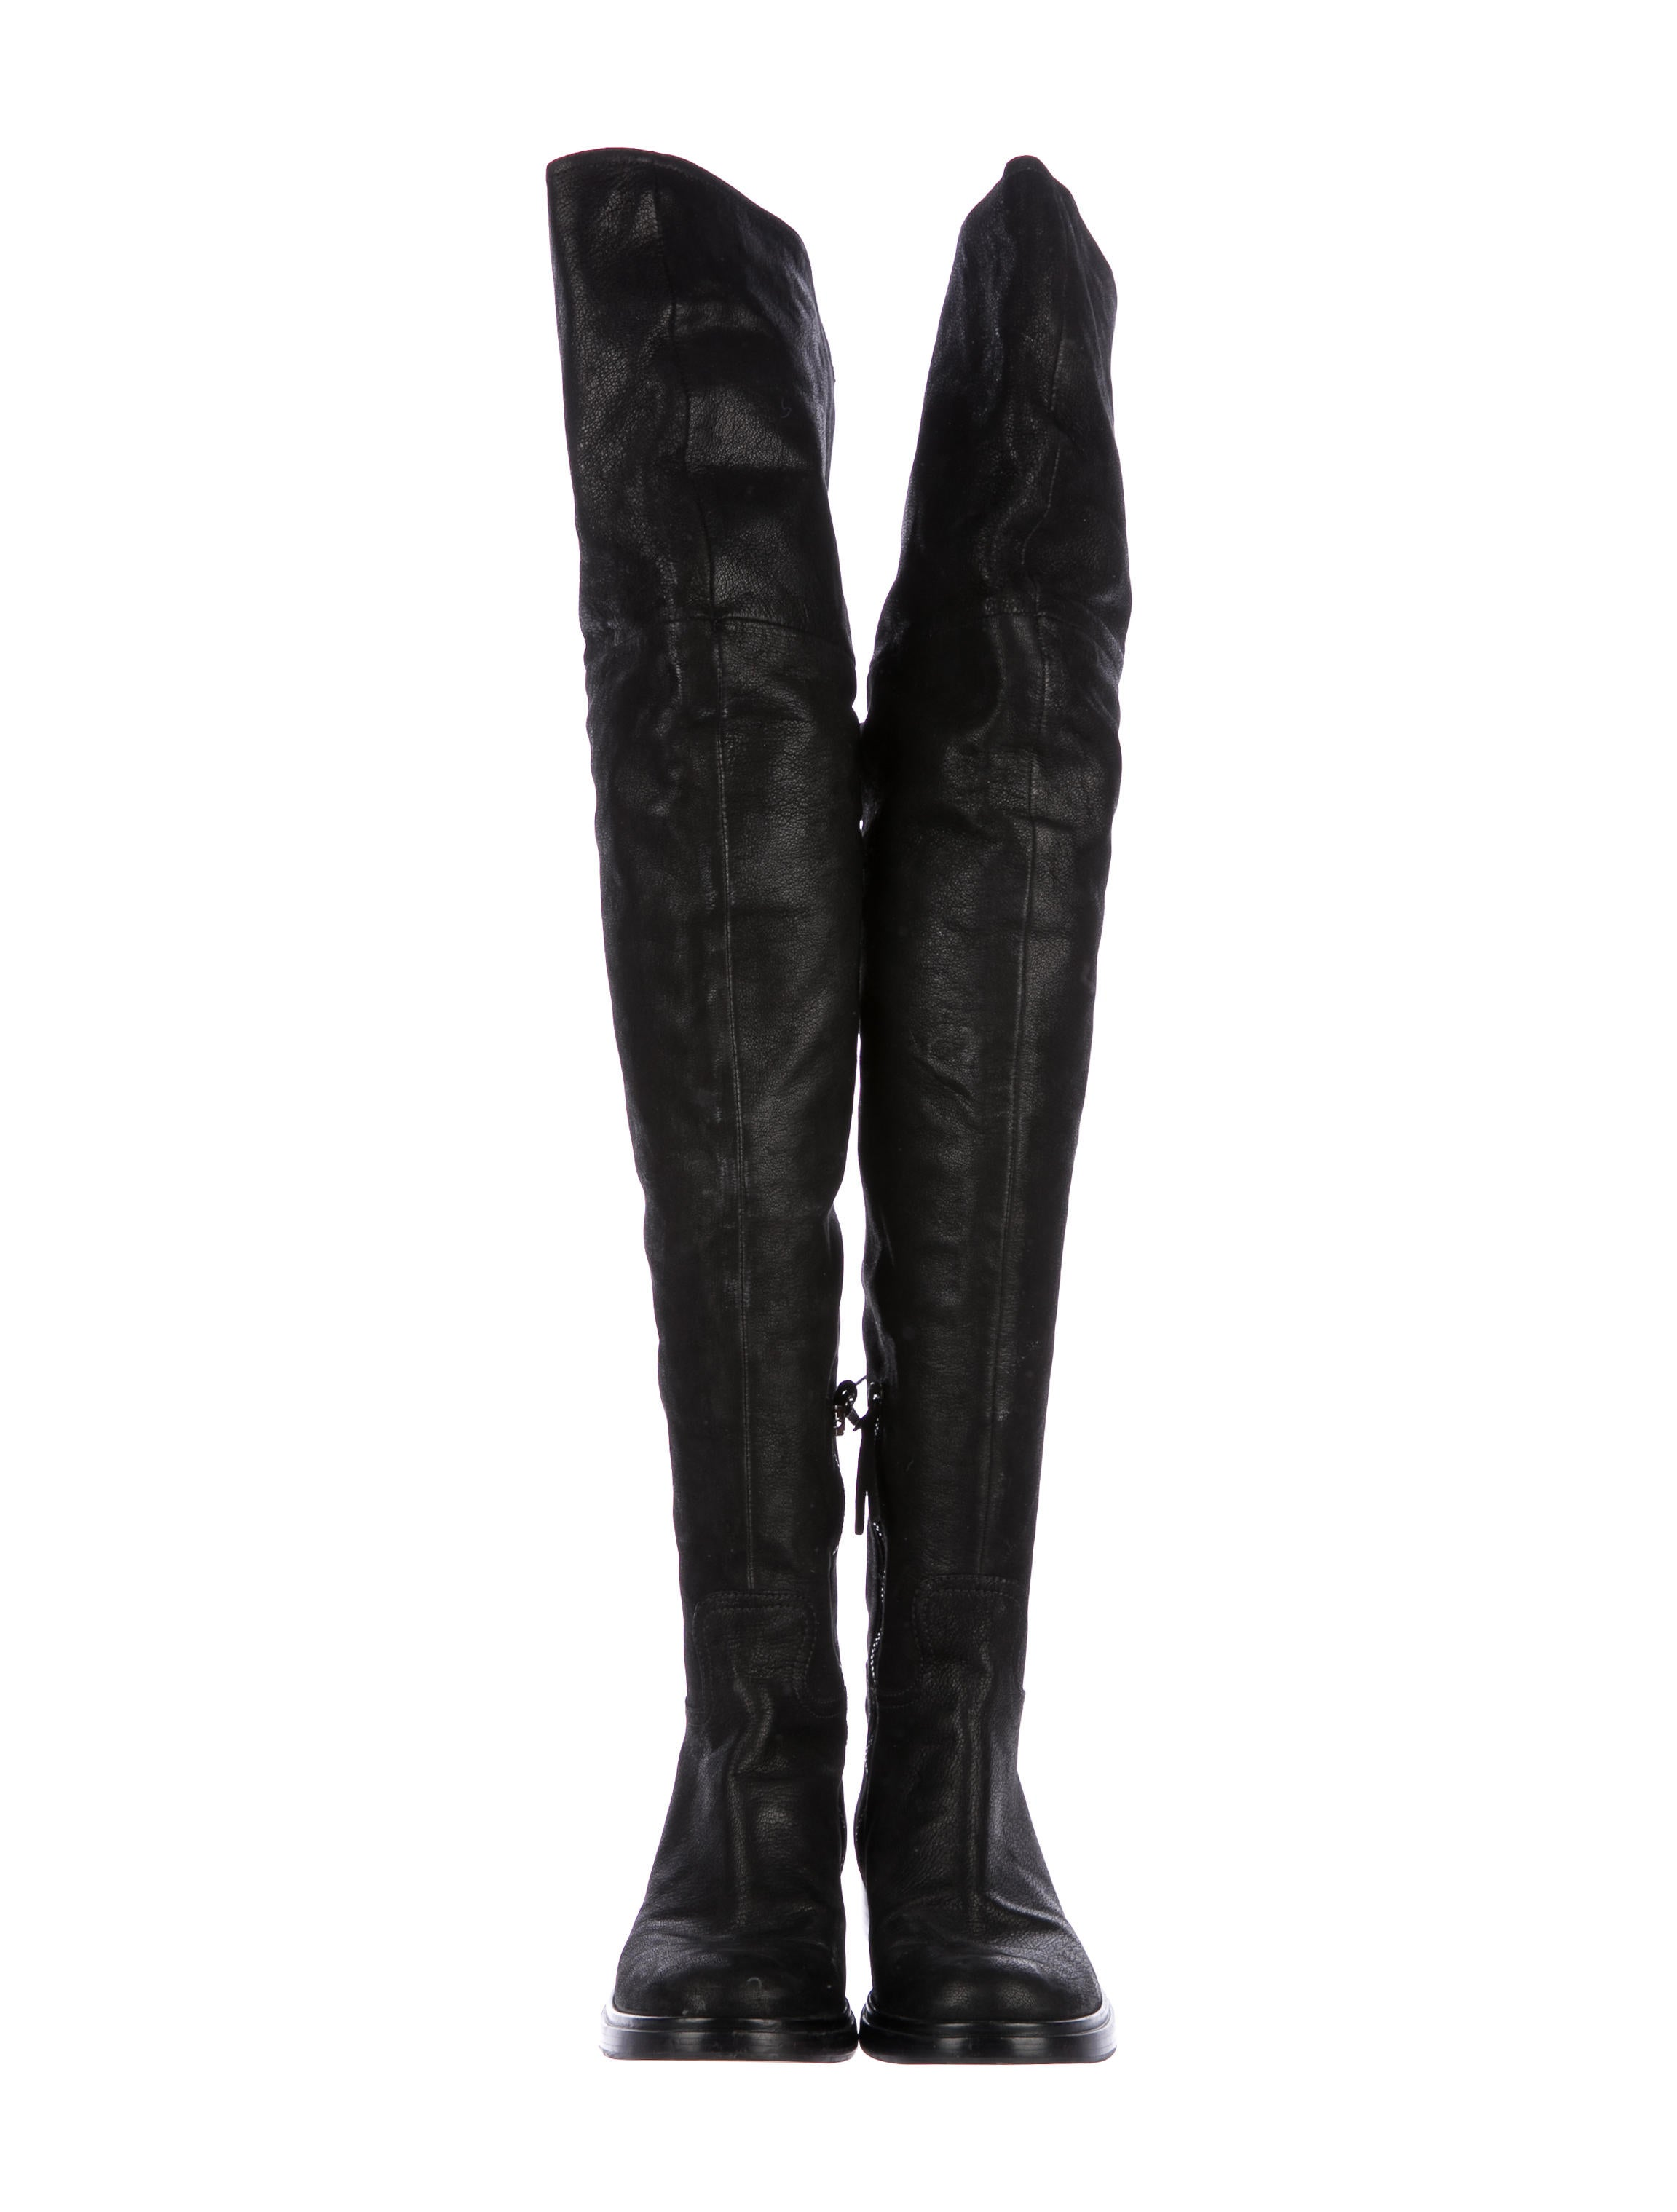 outlet official Miu Miu Thigh-High Whipstitch Boots clearance deals HgREWcneT